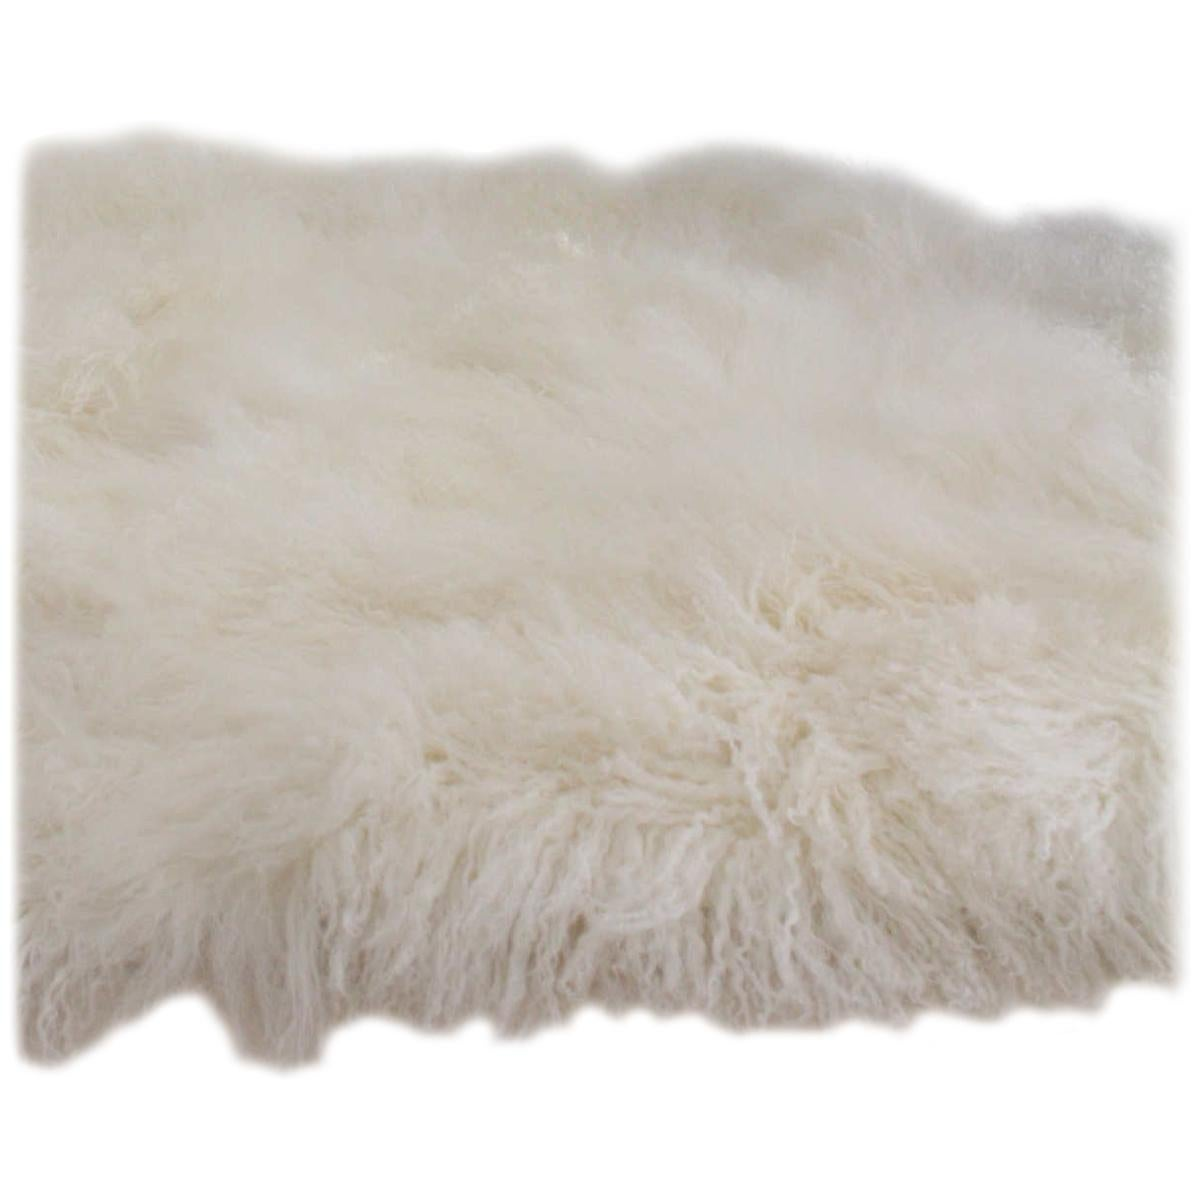 Natural White Mongolian Sheepskin Fur Rug Made in Australia